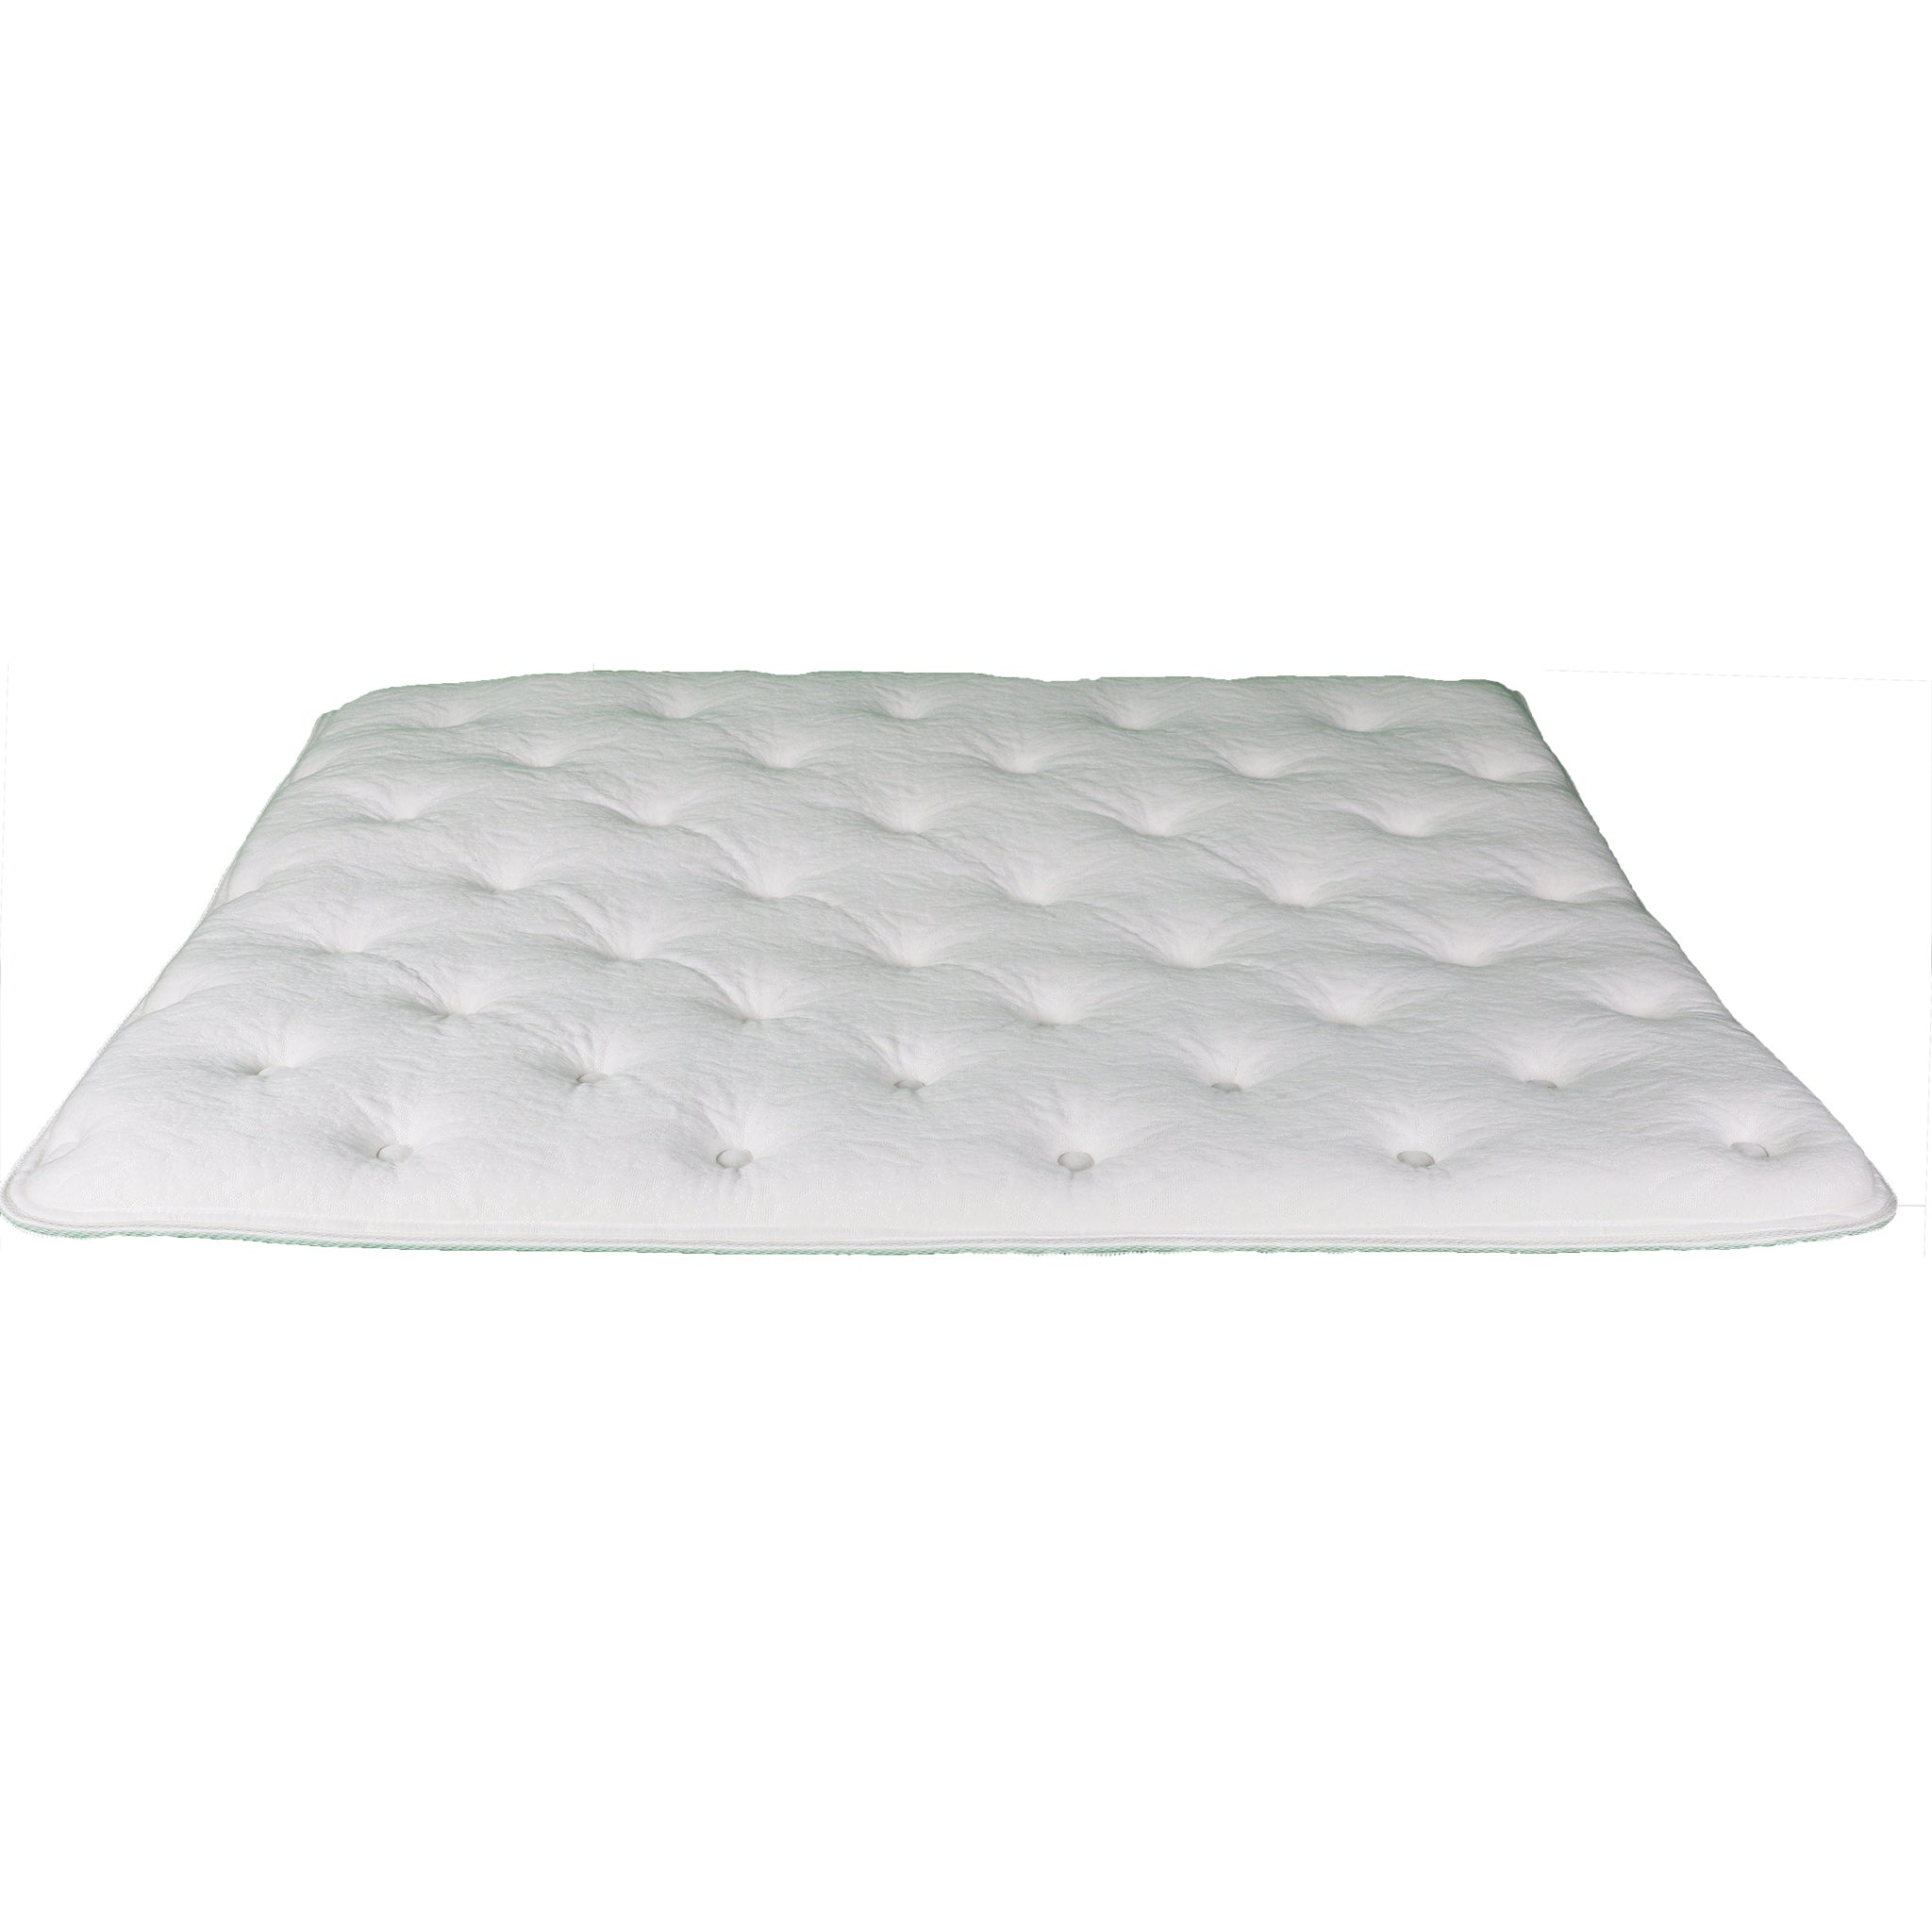 Zip-On Plush Top for Softside Waterbeds - Sterling Sleep Systems